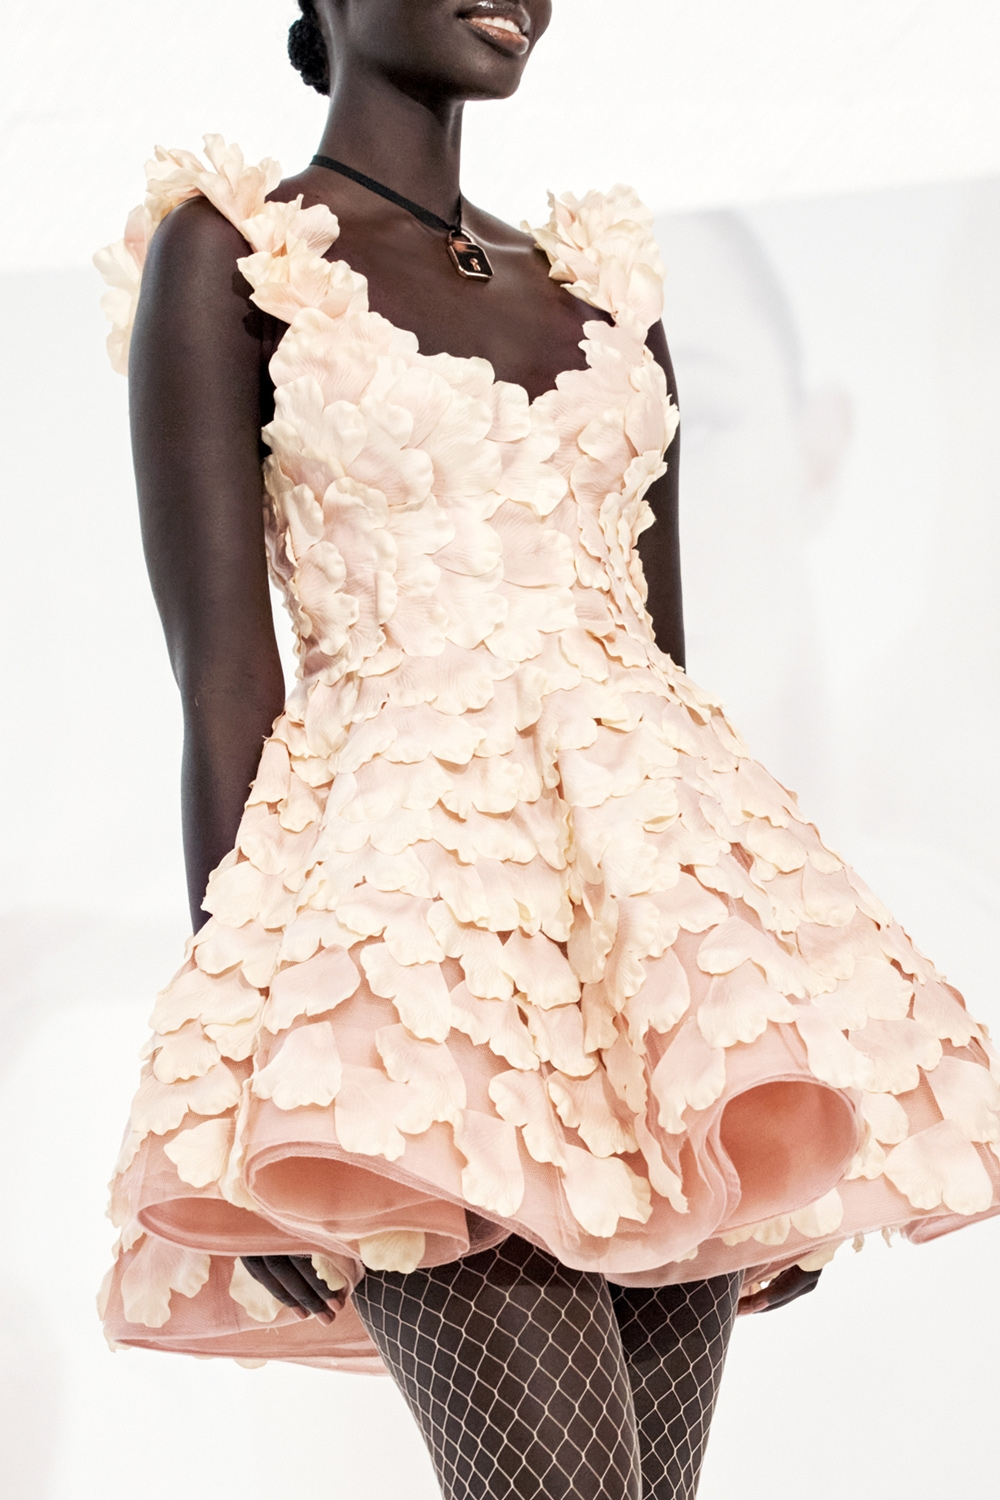 IN THE DETAIL: LOOK 25 SPRING READY TO WEAR 2022